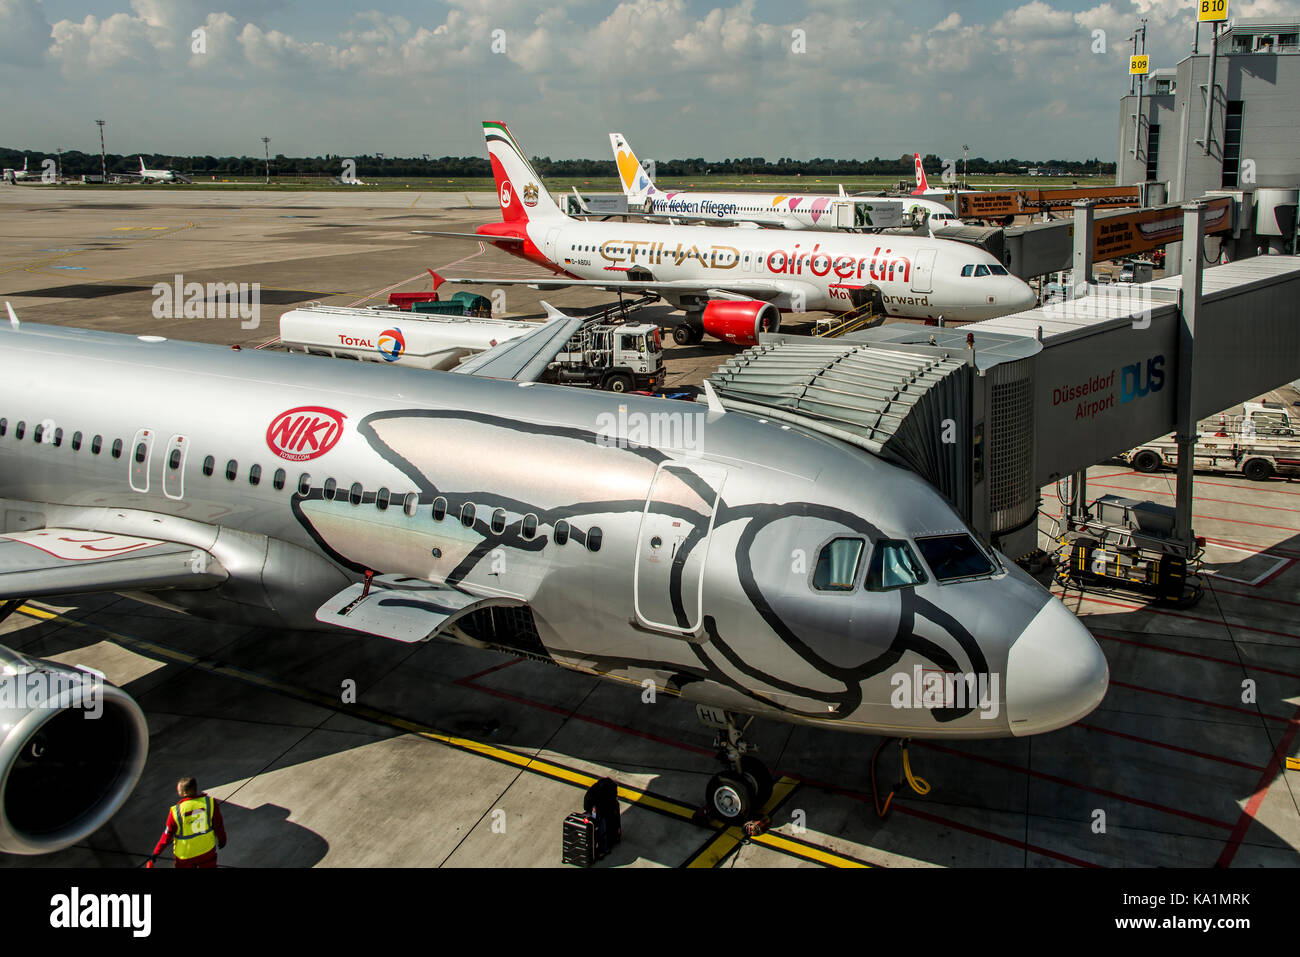 DUESSELDORF, GERMANY 03.09.2017 Aircraft of the Niki Airlines Airberlin partner at the airport - Stock Image